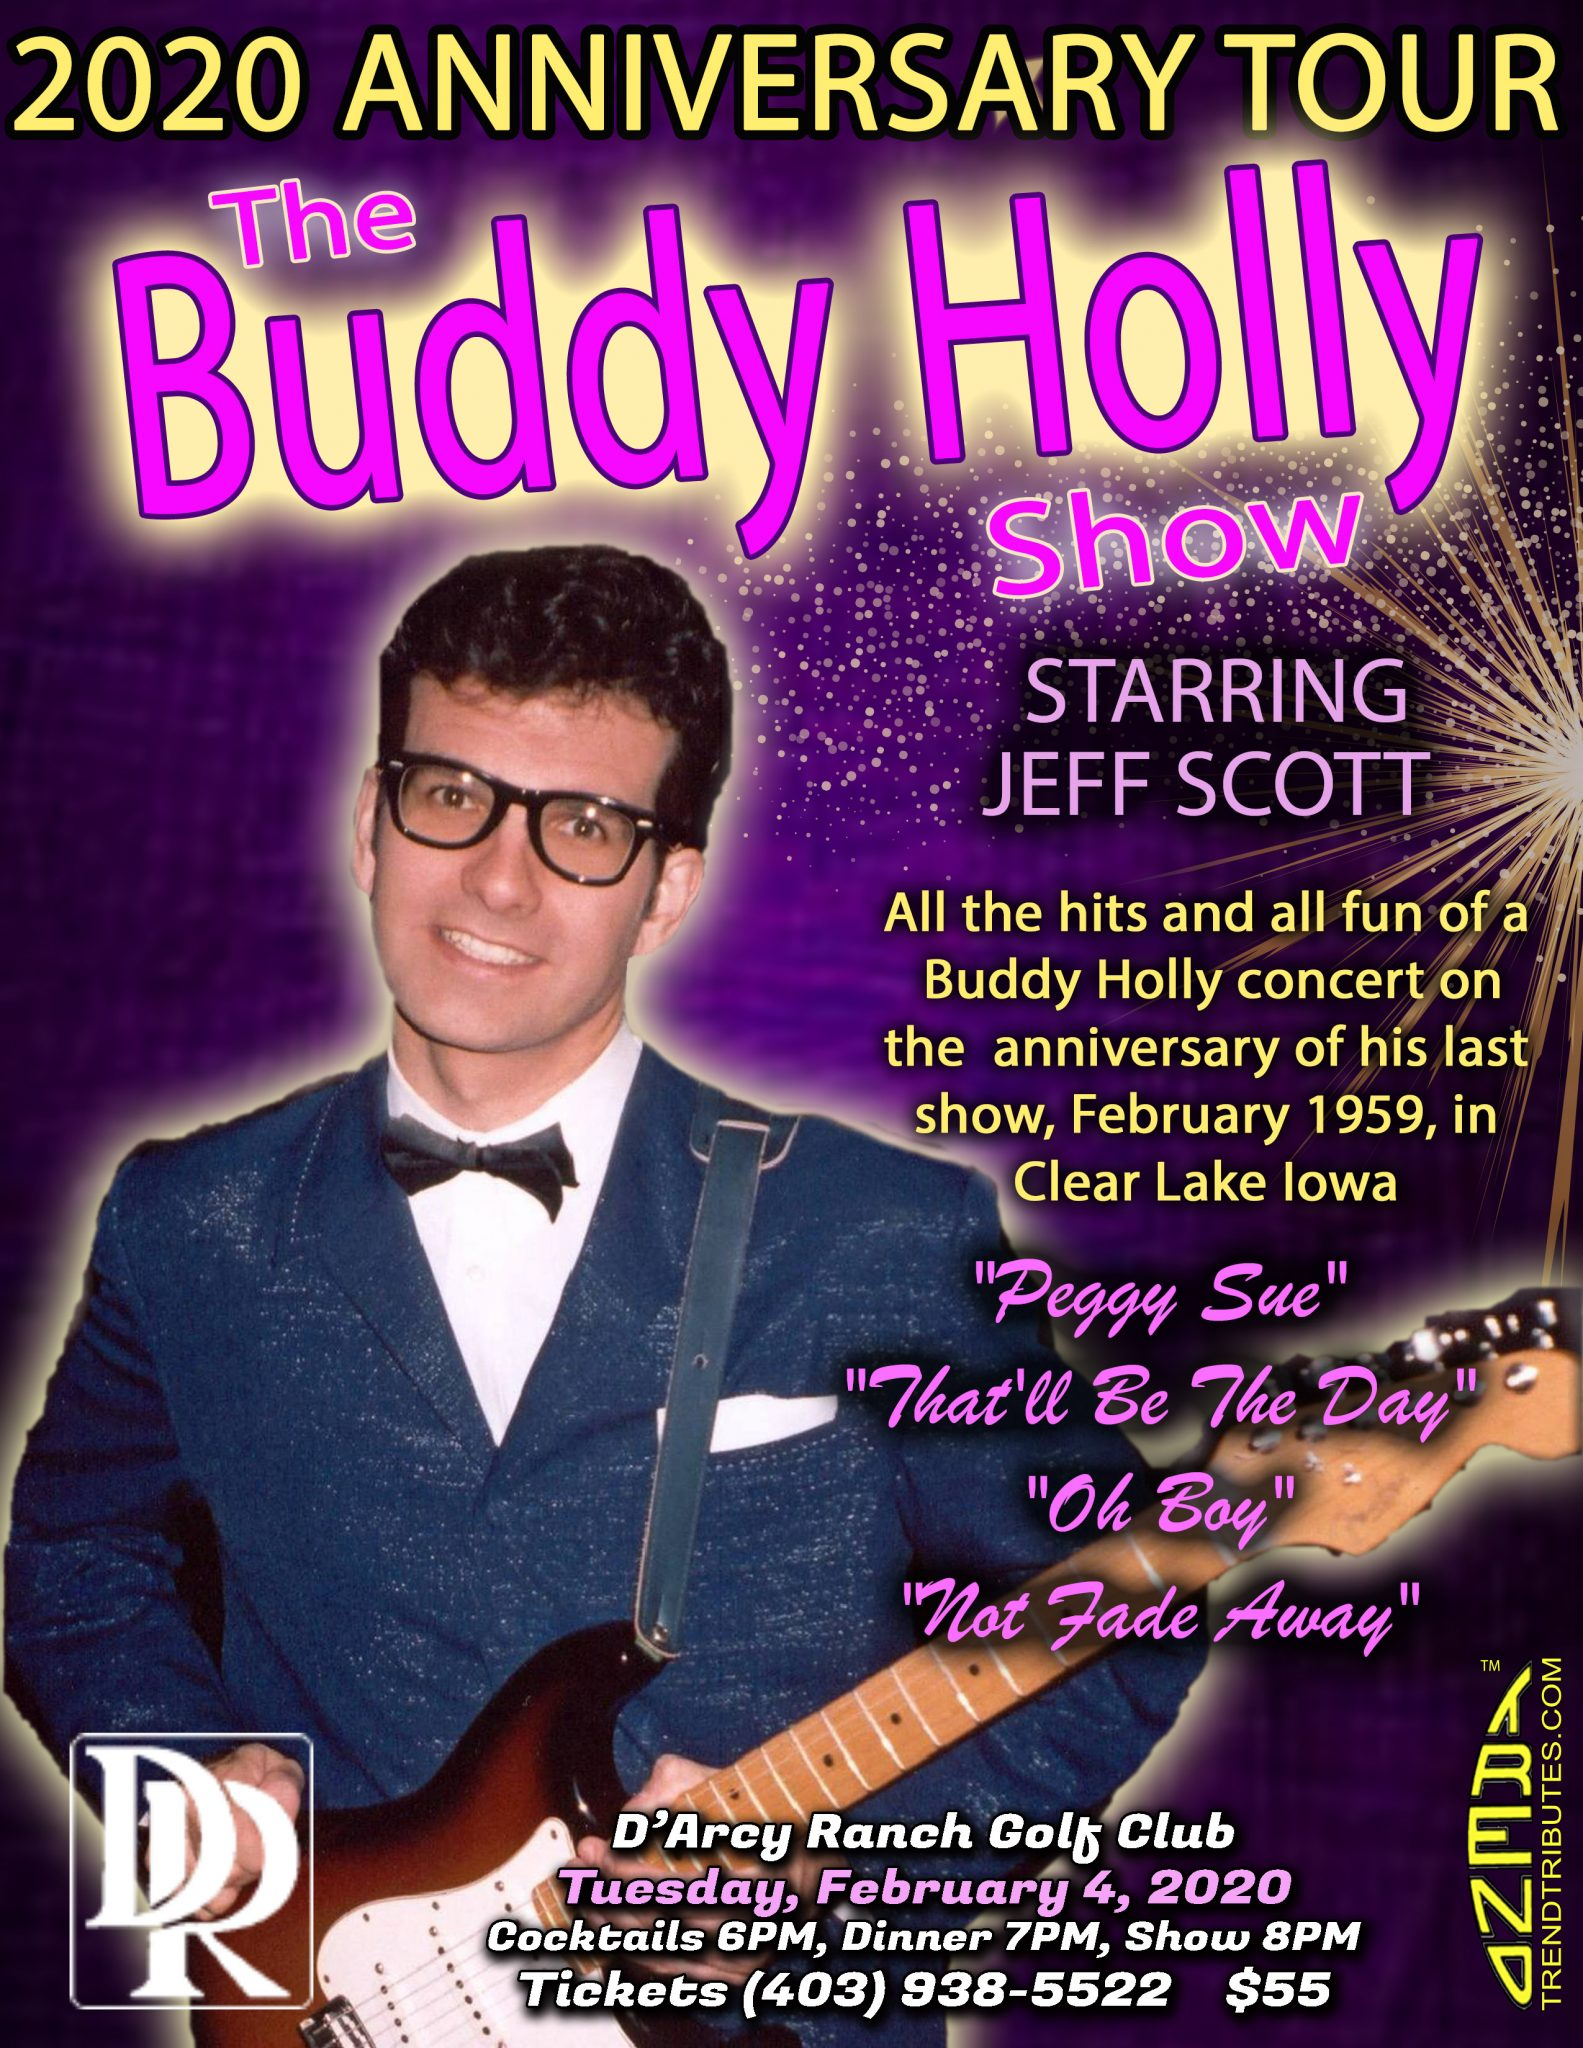 BUDDY HOLLY DARCY RANCH POSTER, 8.5 X 11